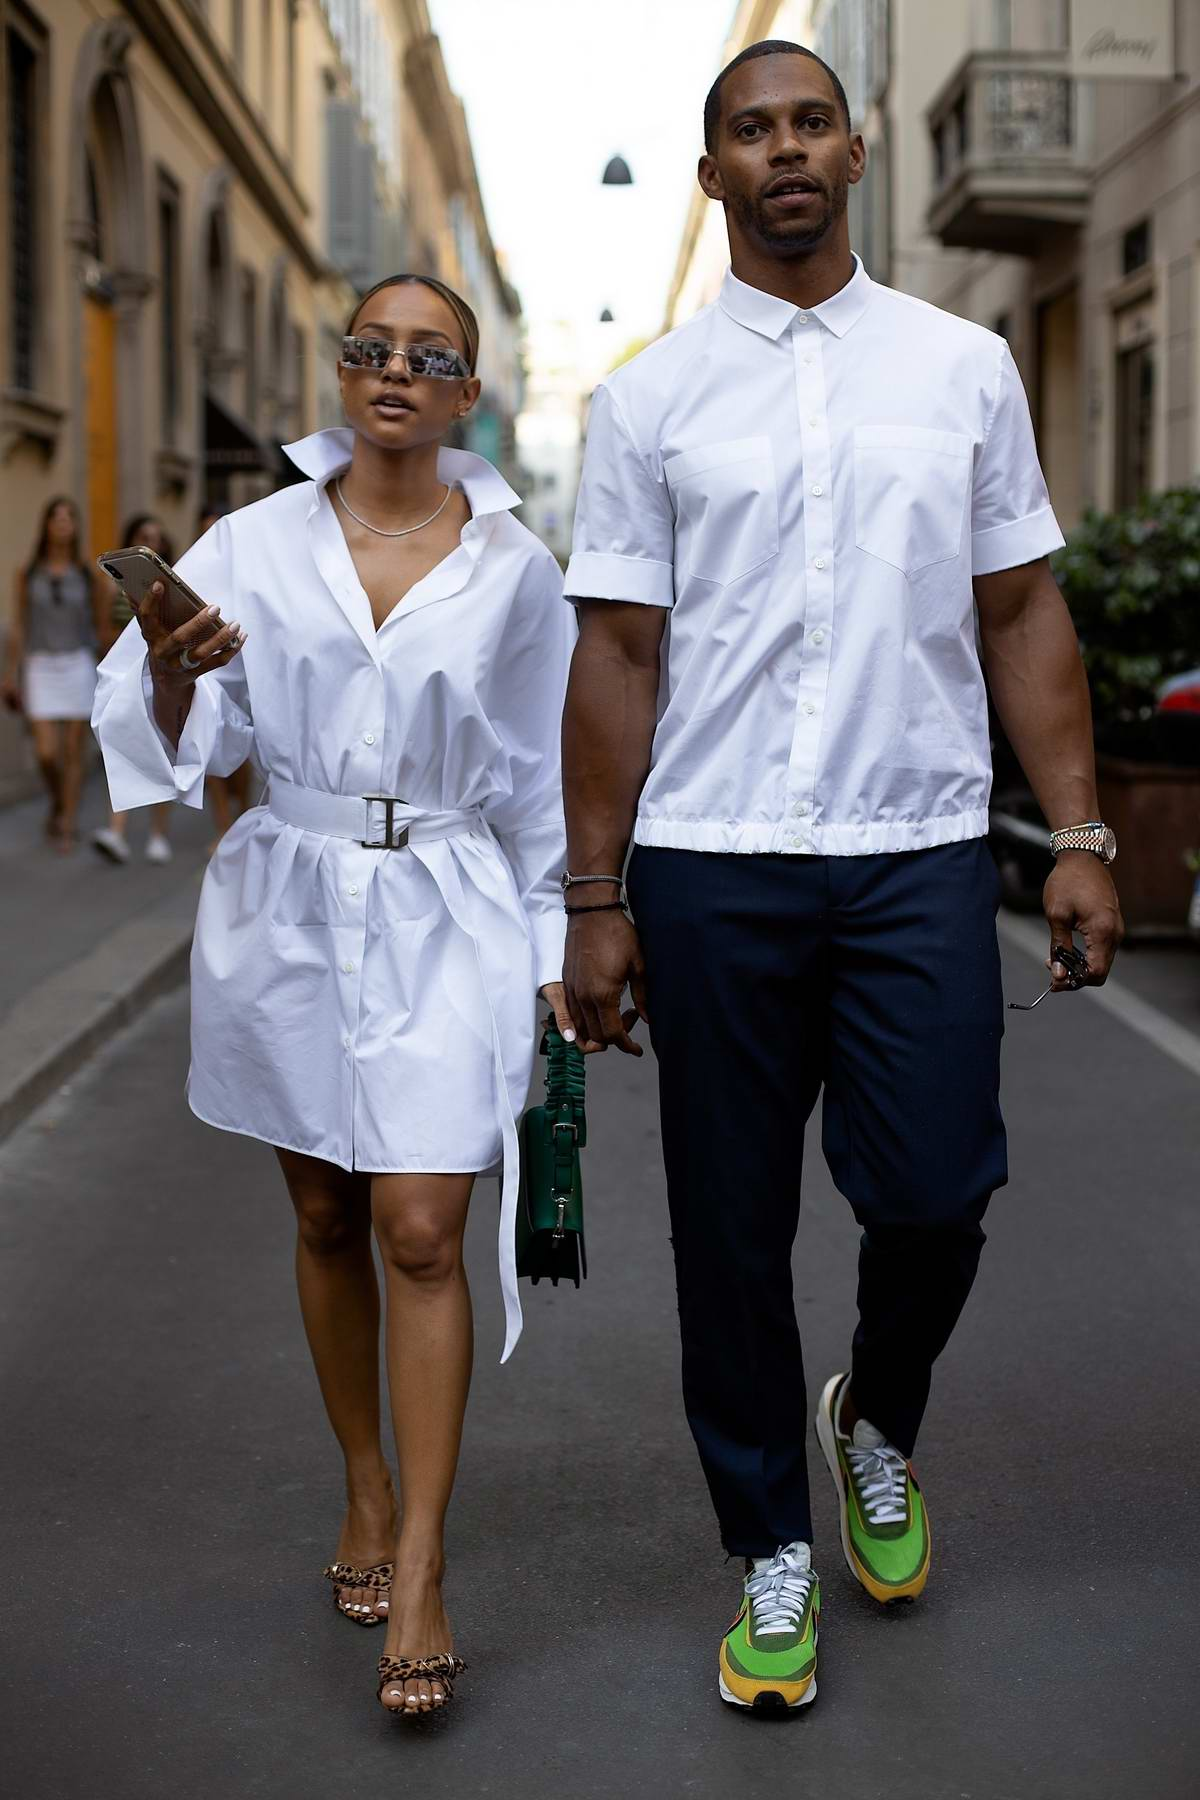 Karrueche Tran and Victor Cruz hold hands as they step out in matching outfits in Milan, Italy